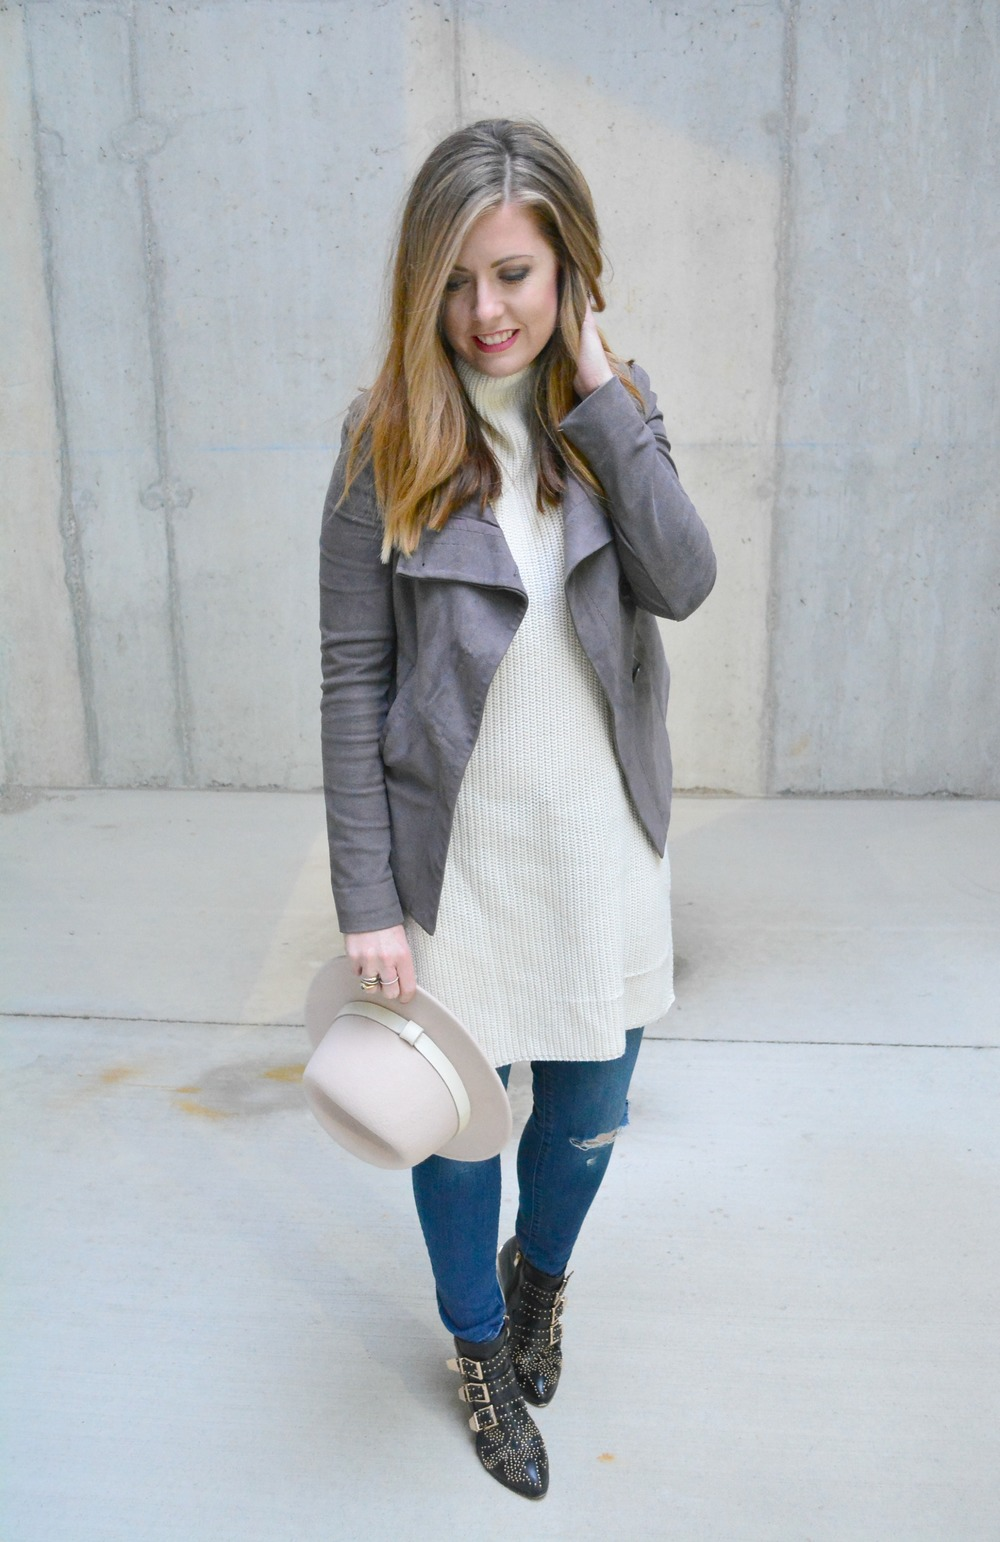 Sweater tunic with suede jacket for winter